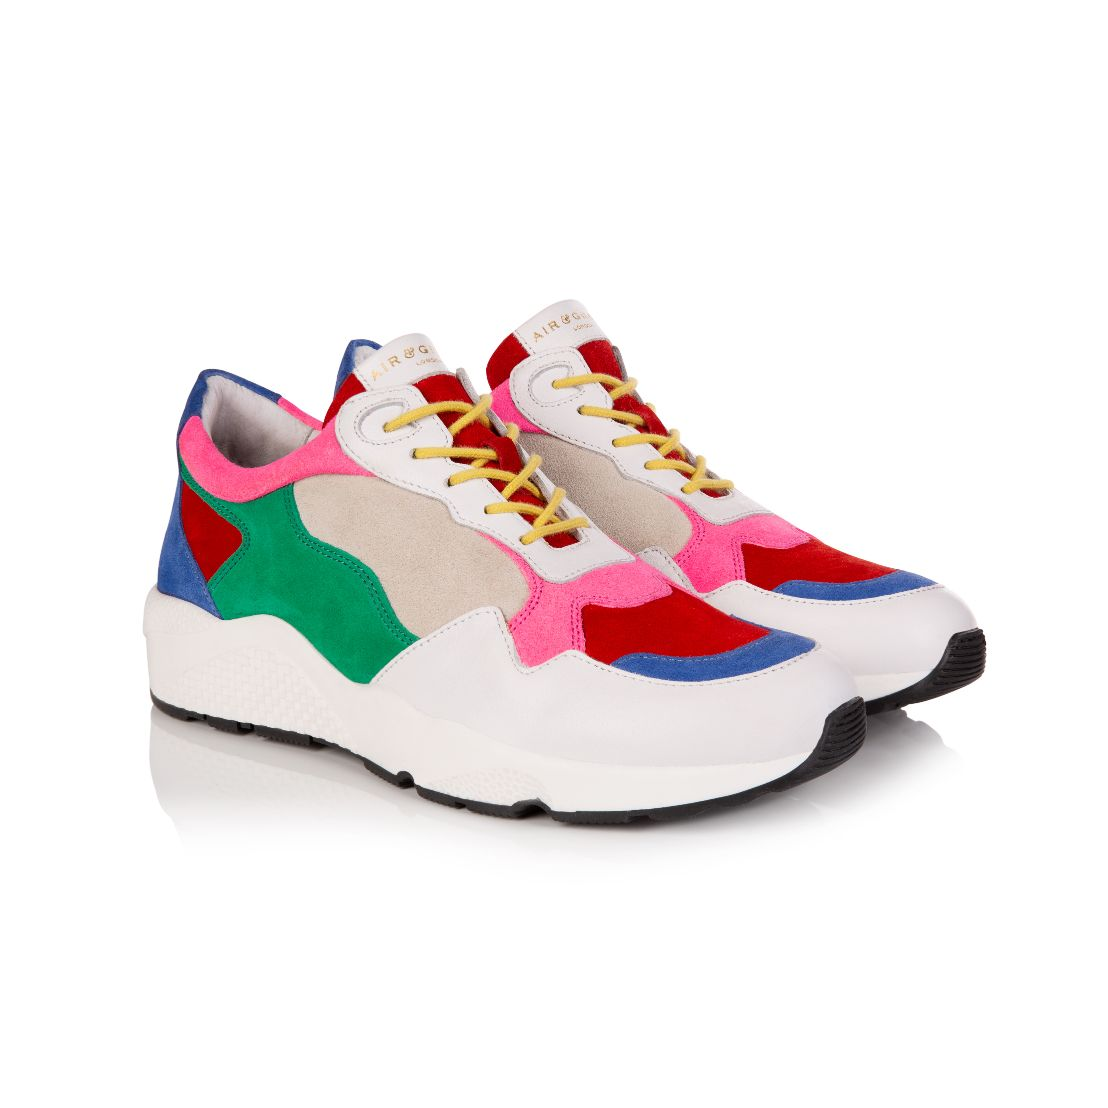 COSMIC: MULTI COLOURED BRIGHT SUEDE TRAINERS